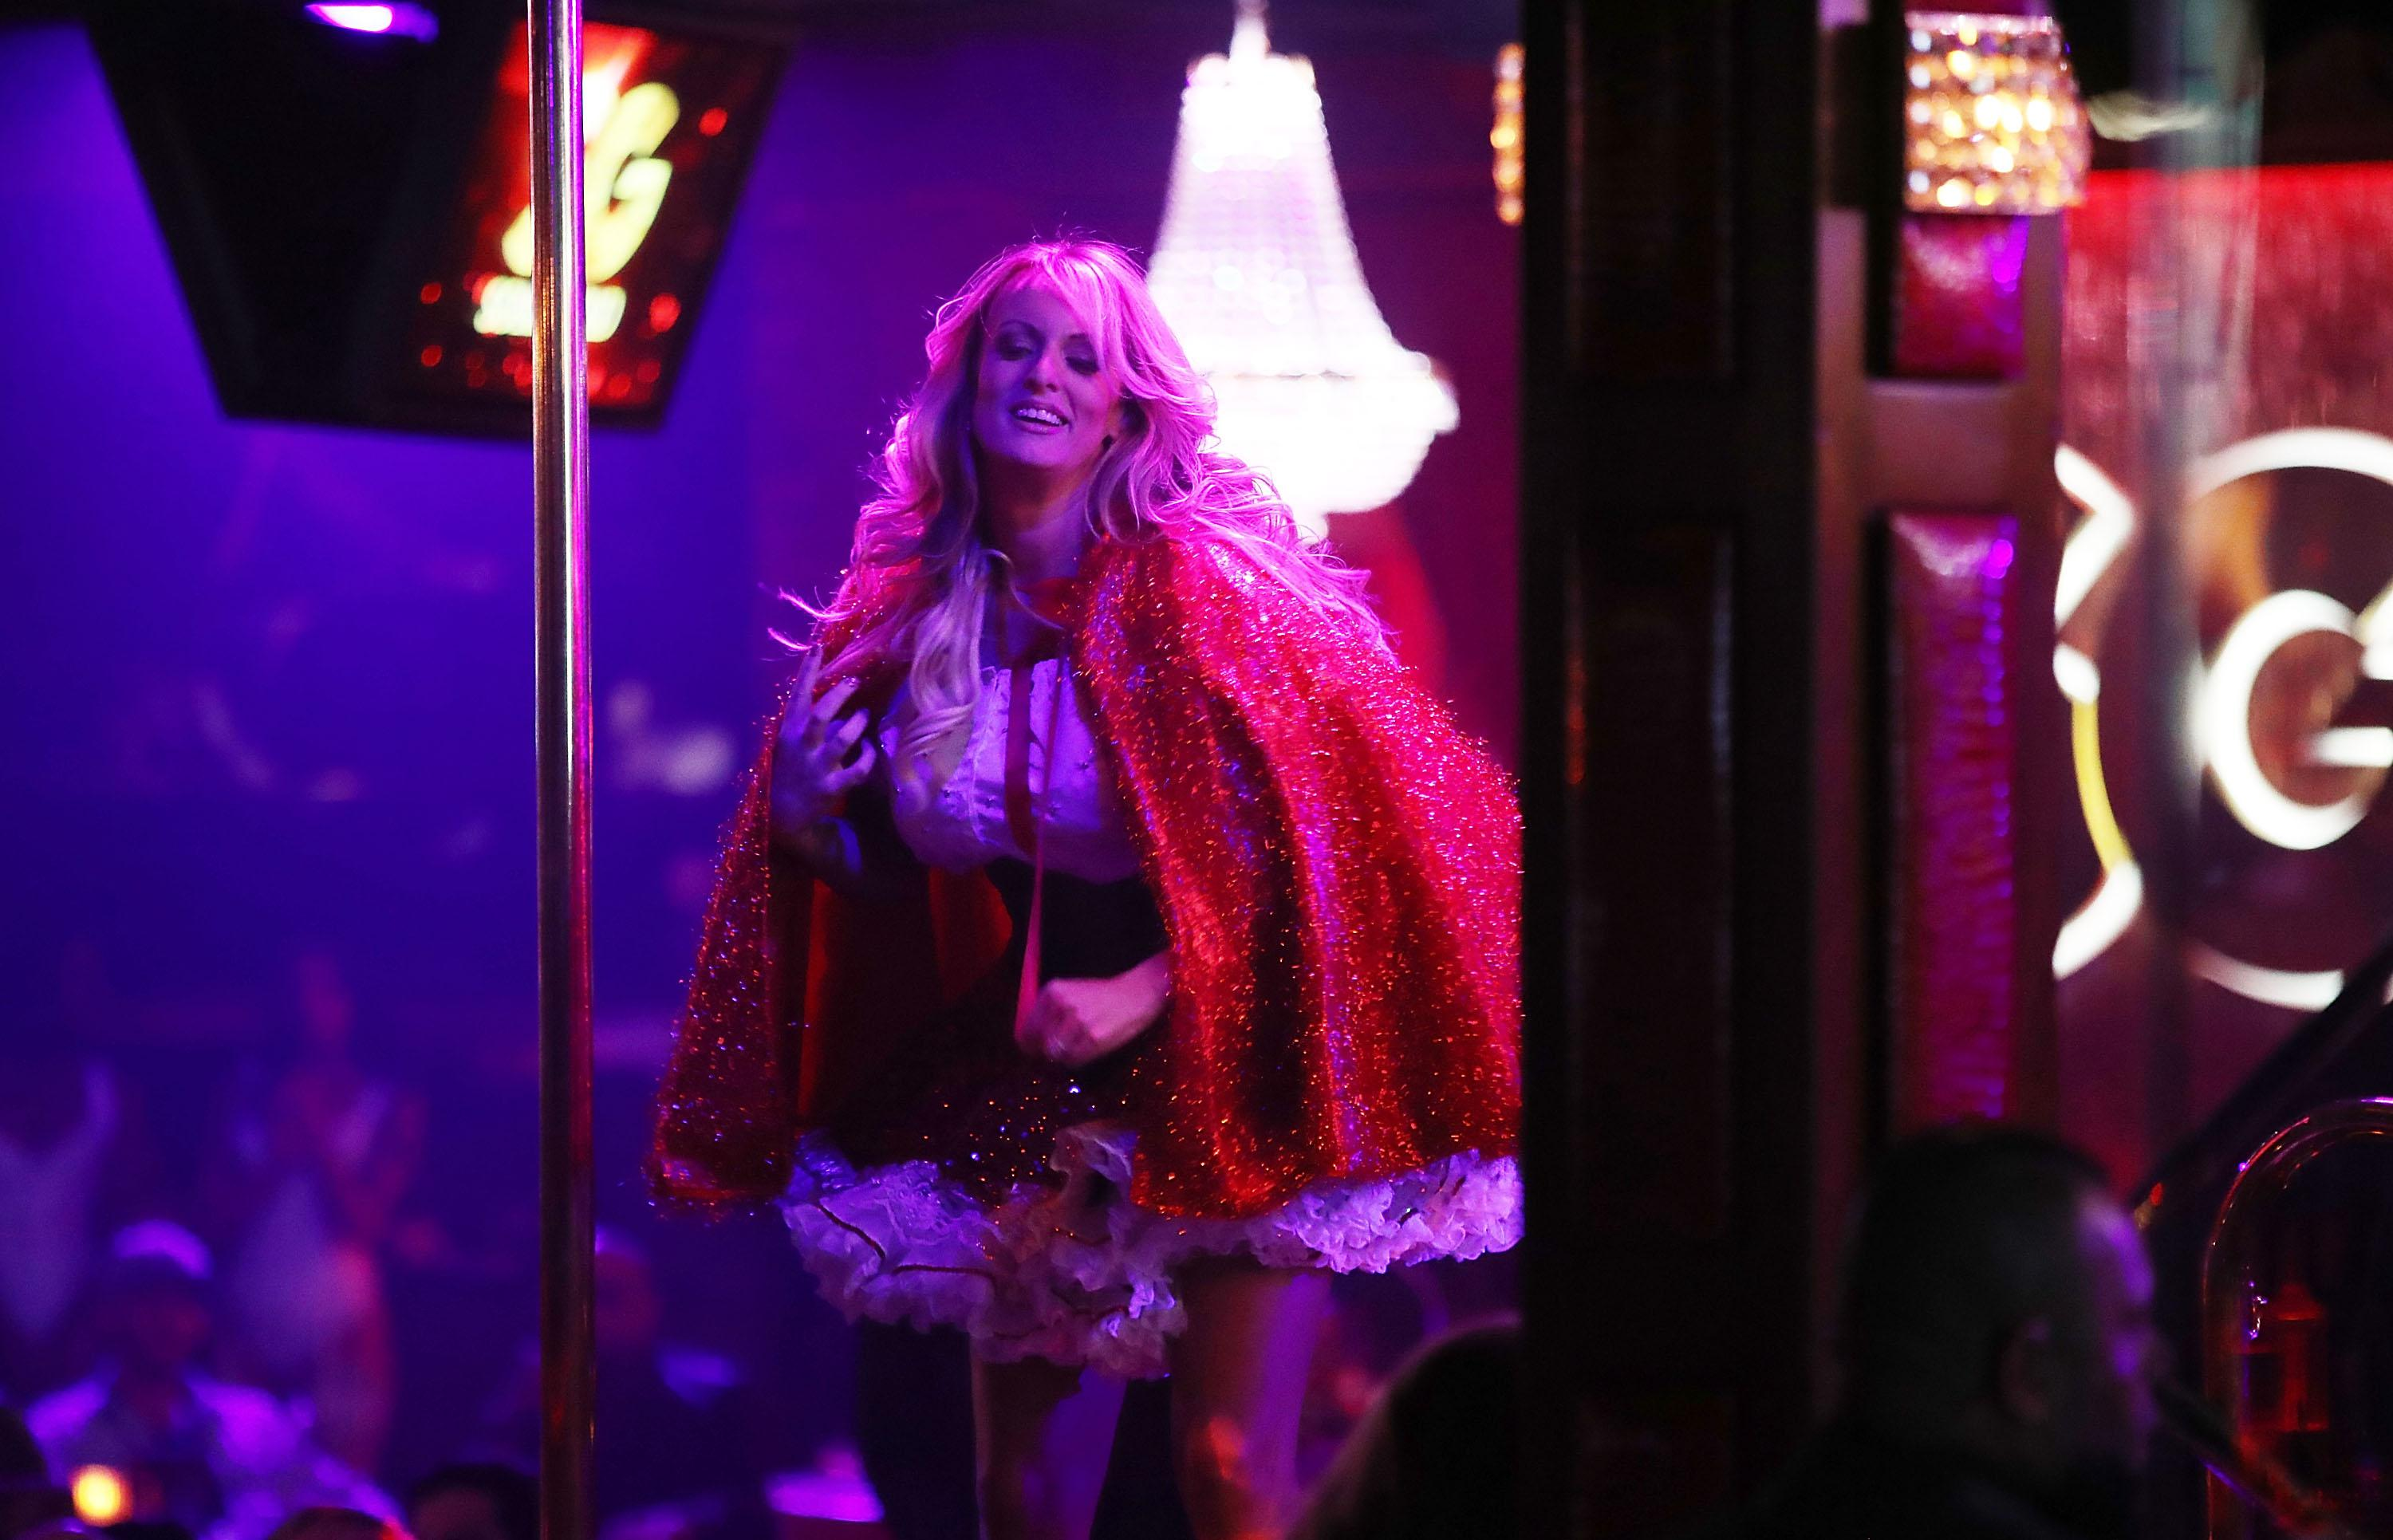 The actress Stephanie Clifford, who uses the stage name Stormy Daniels, performs at the Solid Gold Fort Lauderdale strip club on March 9, 2018 in Pompano Beach, Florida.